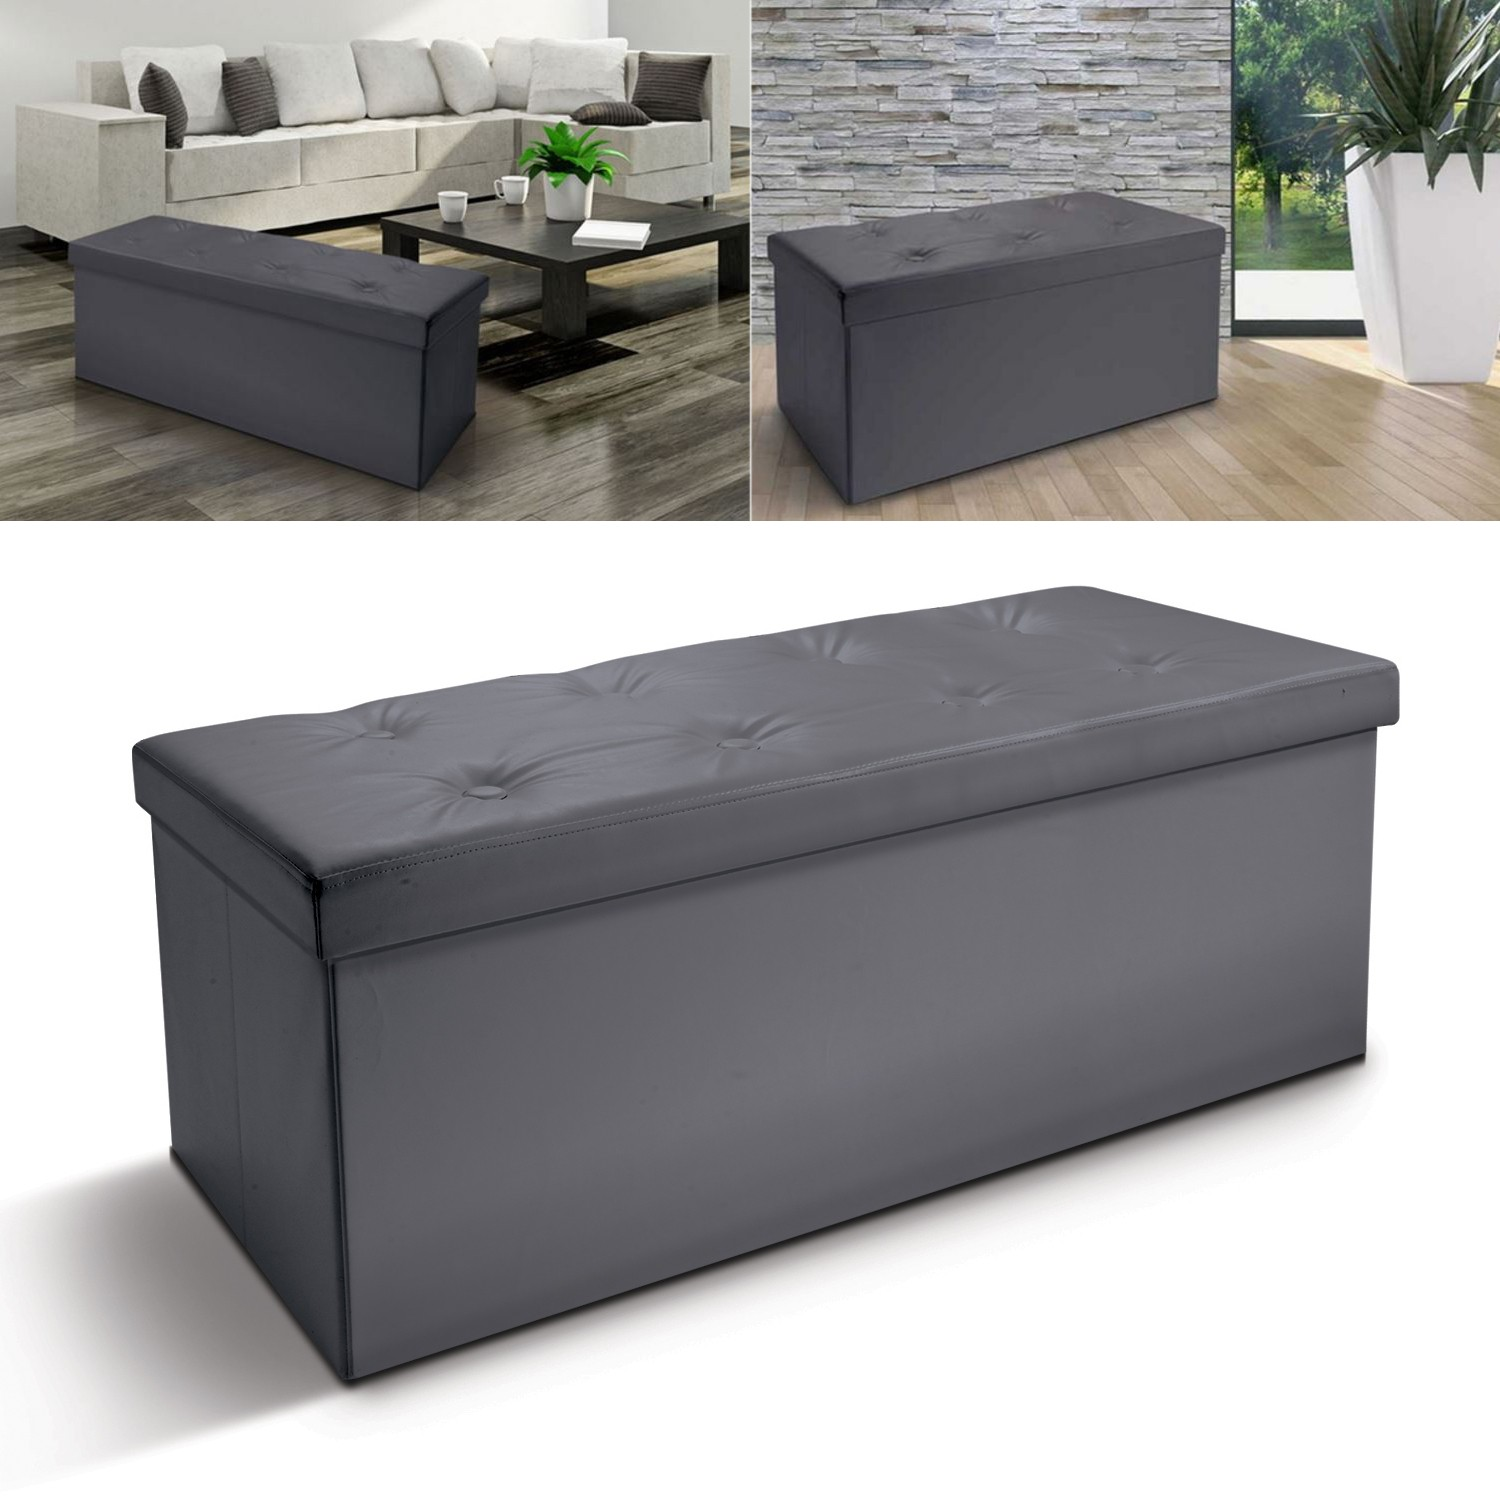 banc coffre rangement pliable gris gm 100x38x38 cm meubles. Black Bedroom Furniture Sets. Home Design Ideas